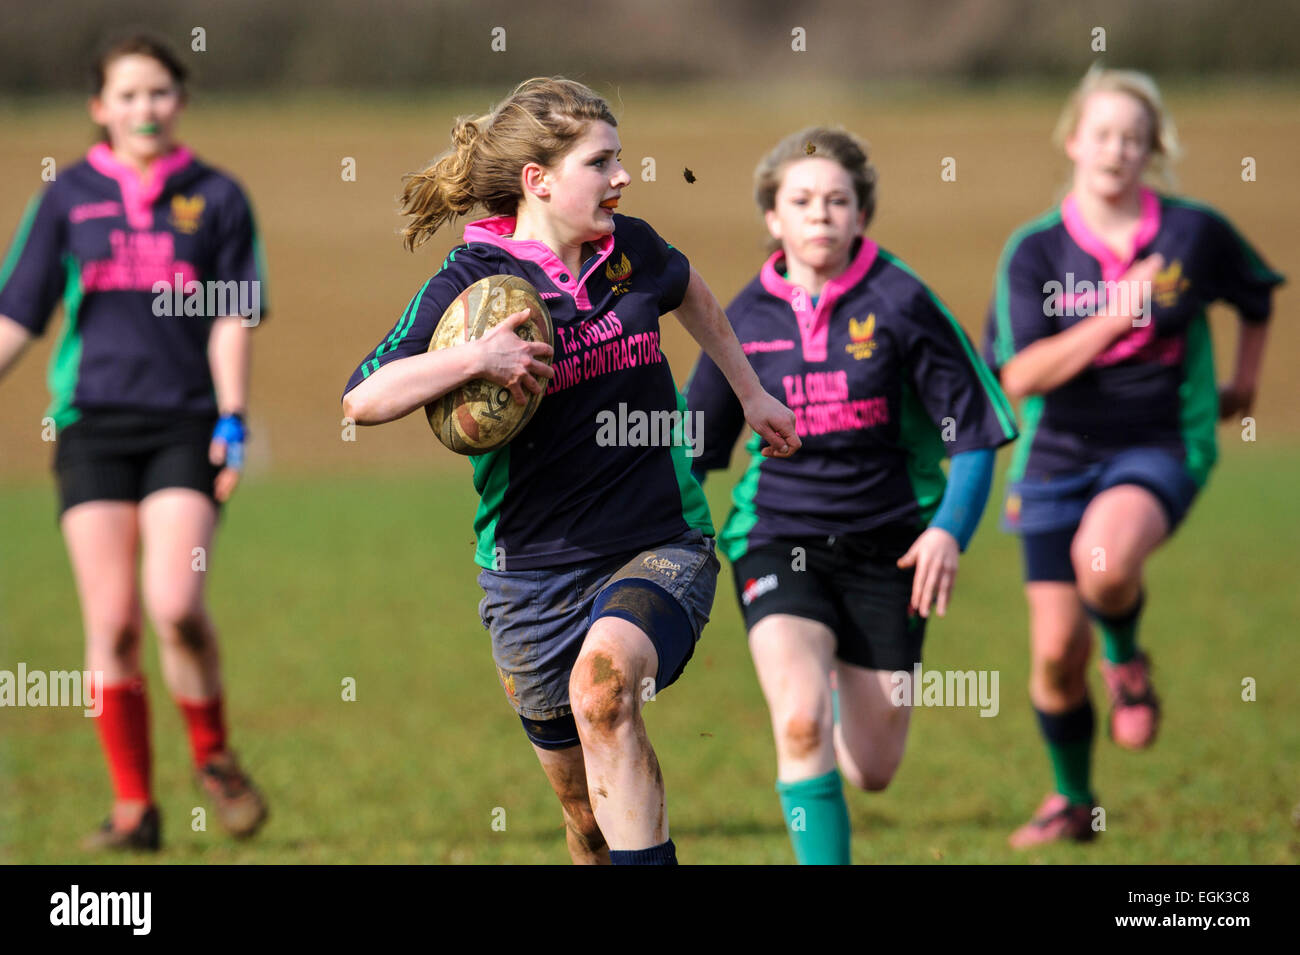 North Dorset Rugby Football Club under 18 girks versus Dorset County U18 girls. NDRFC player in action. Stock Photo